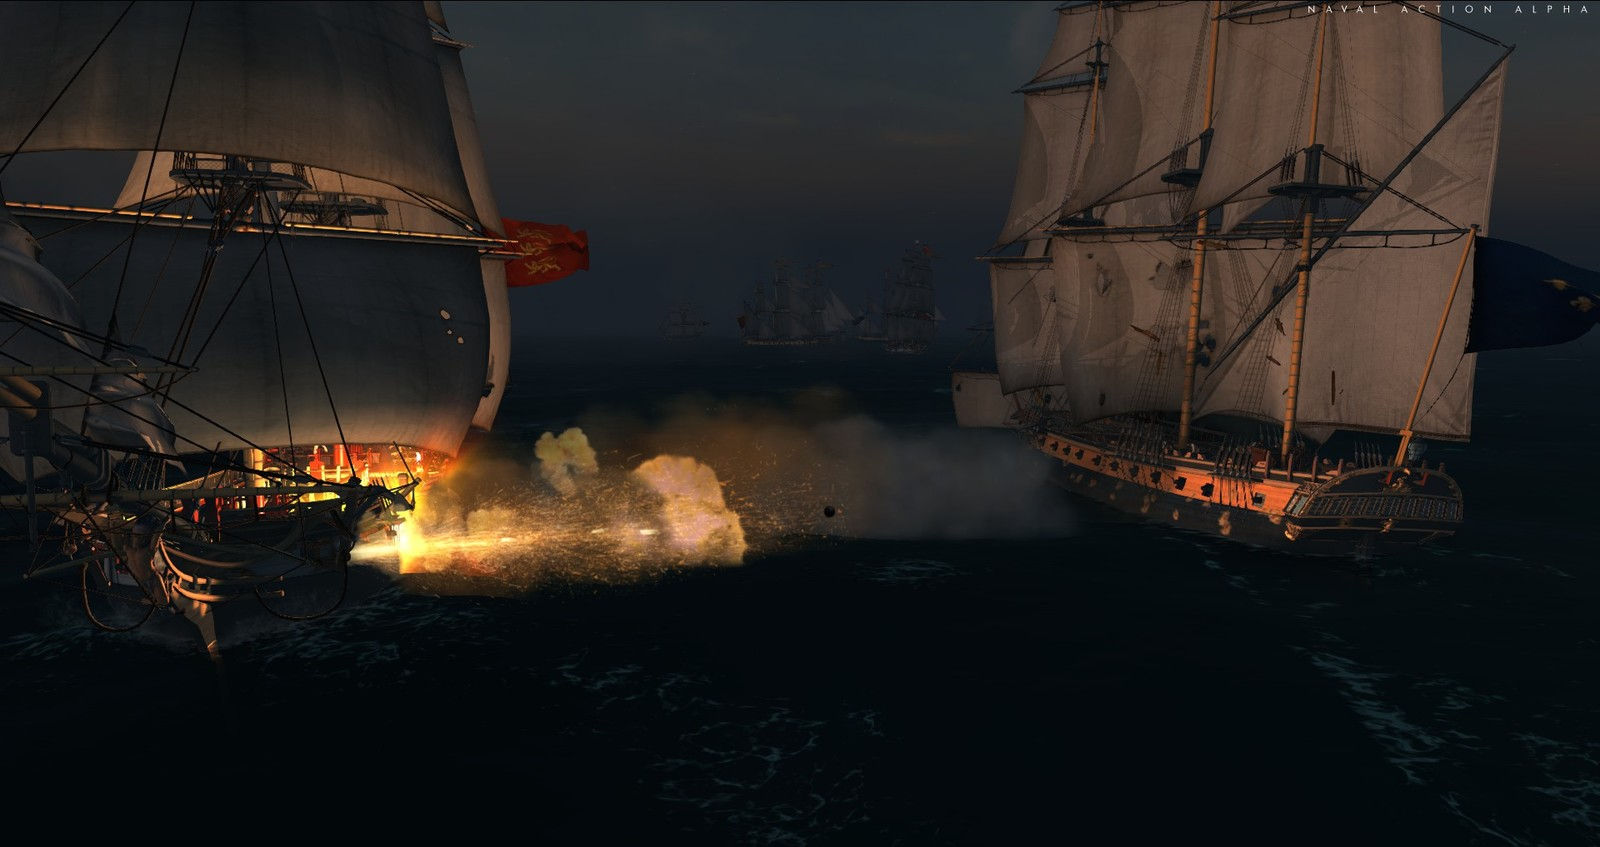 Night cannon fire - Members Albums Category - Game-Labs Forum